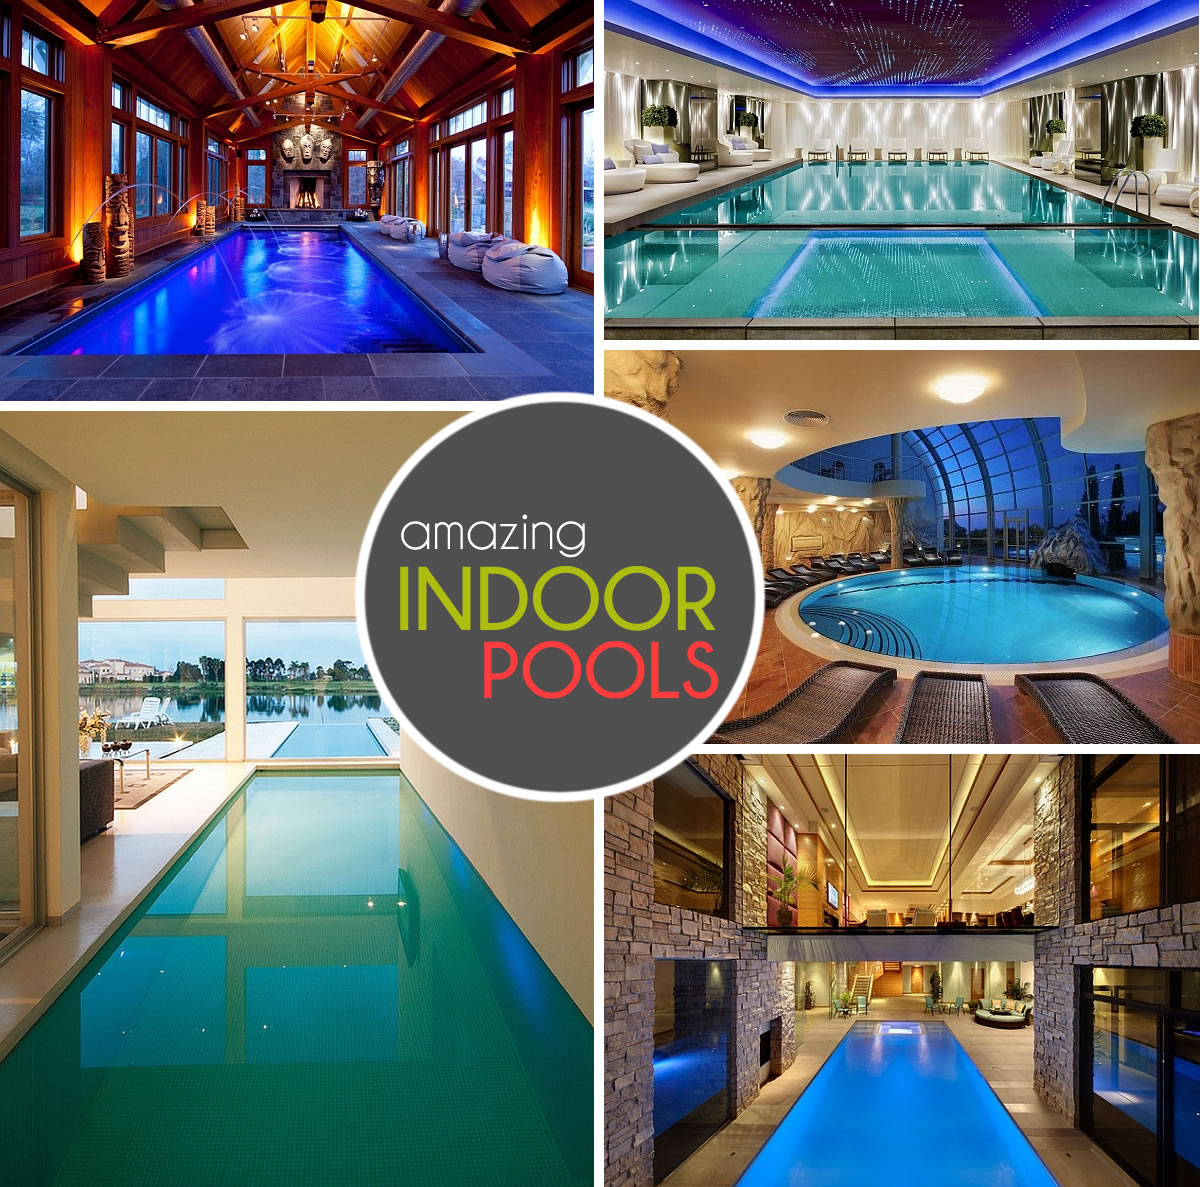 residential indoor lap pool. 50 Amazing Indoor Swimming Pool Ideas For A Delightful Dip! Residential Lap